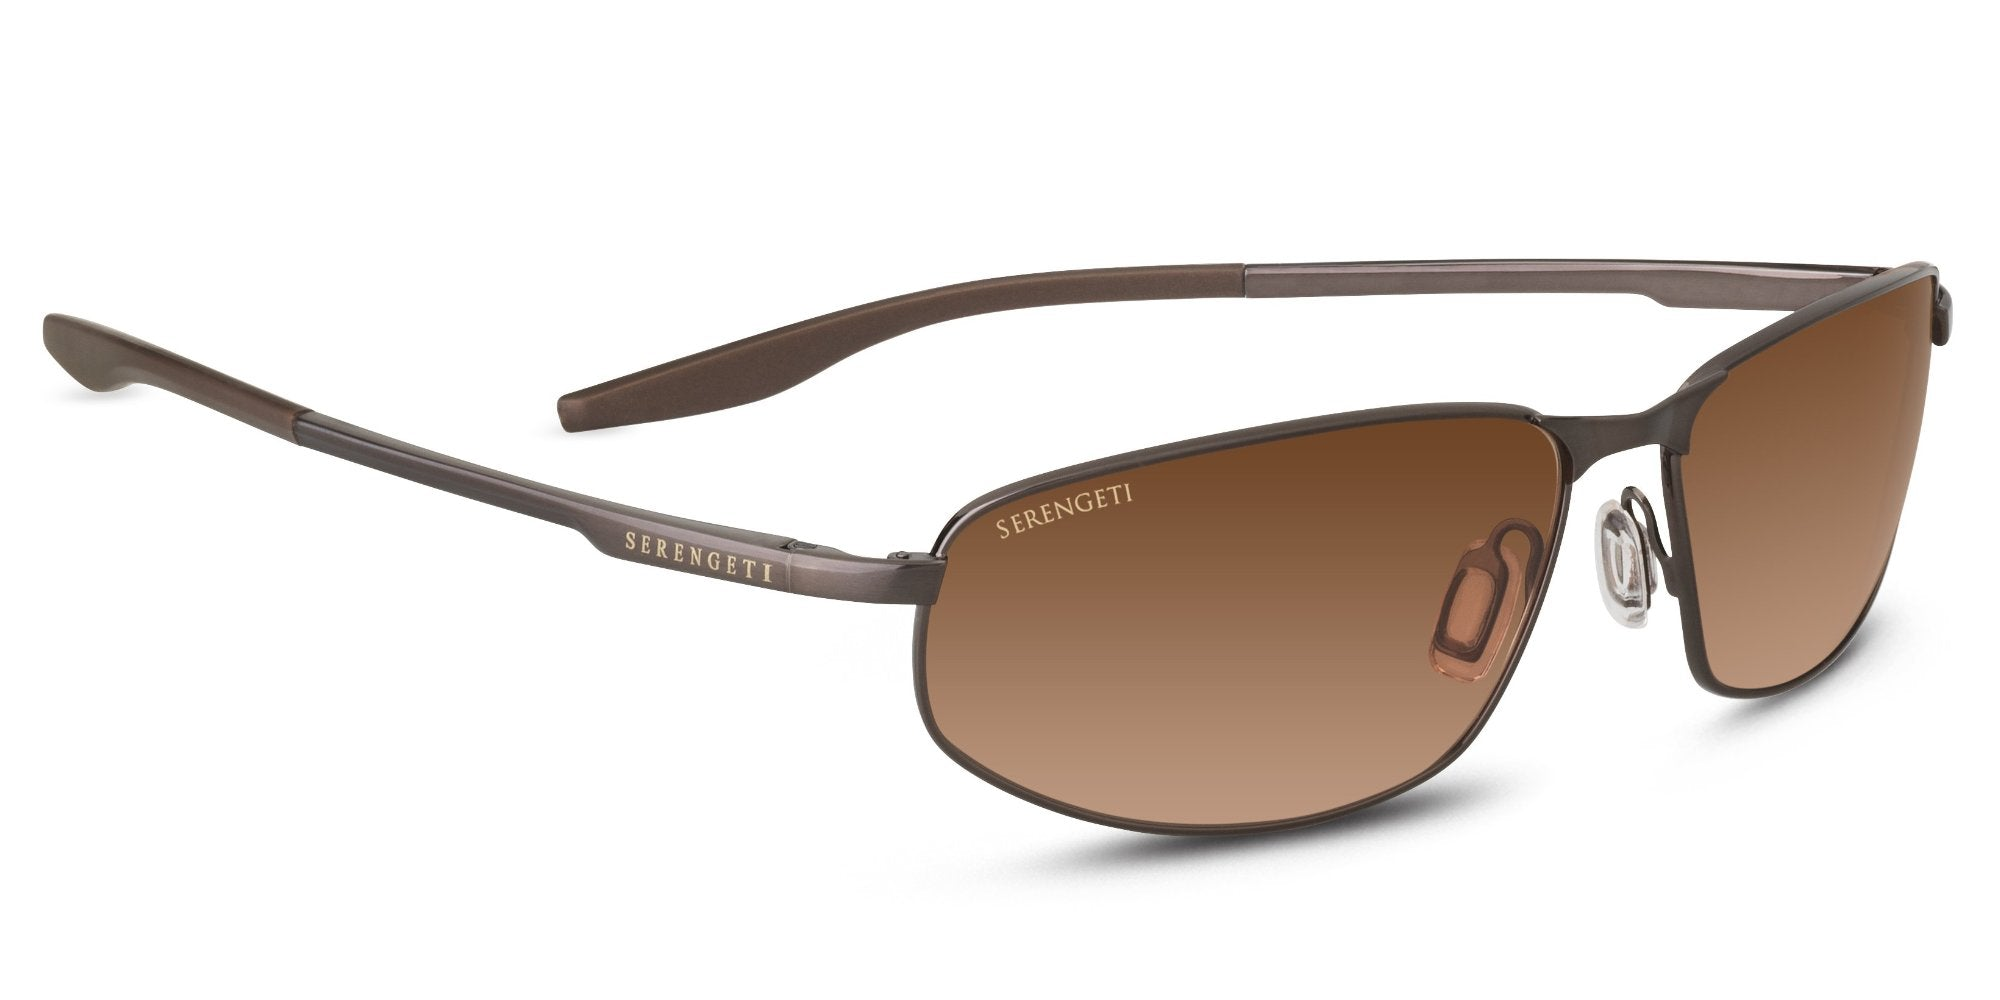 095932a08f64 Serengeti Matera 8728 -Brushed Brown, Non Polarized Drivers Gradient Lenses